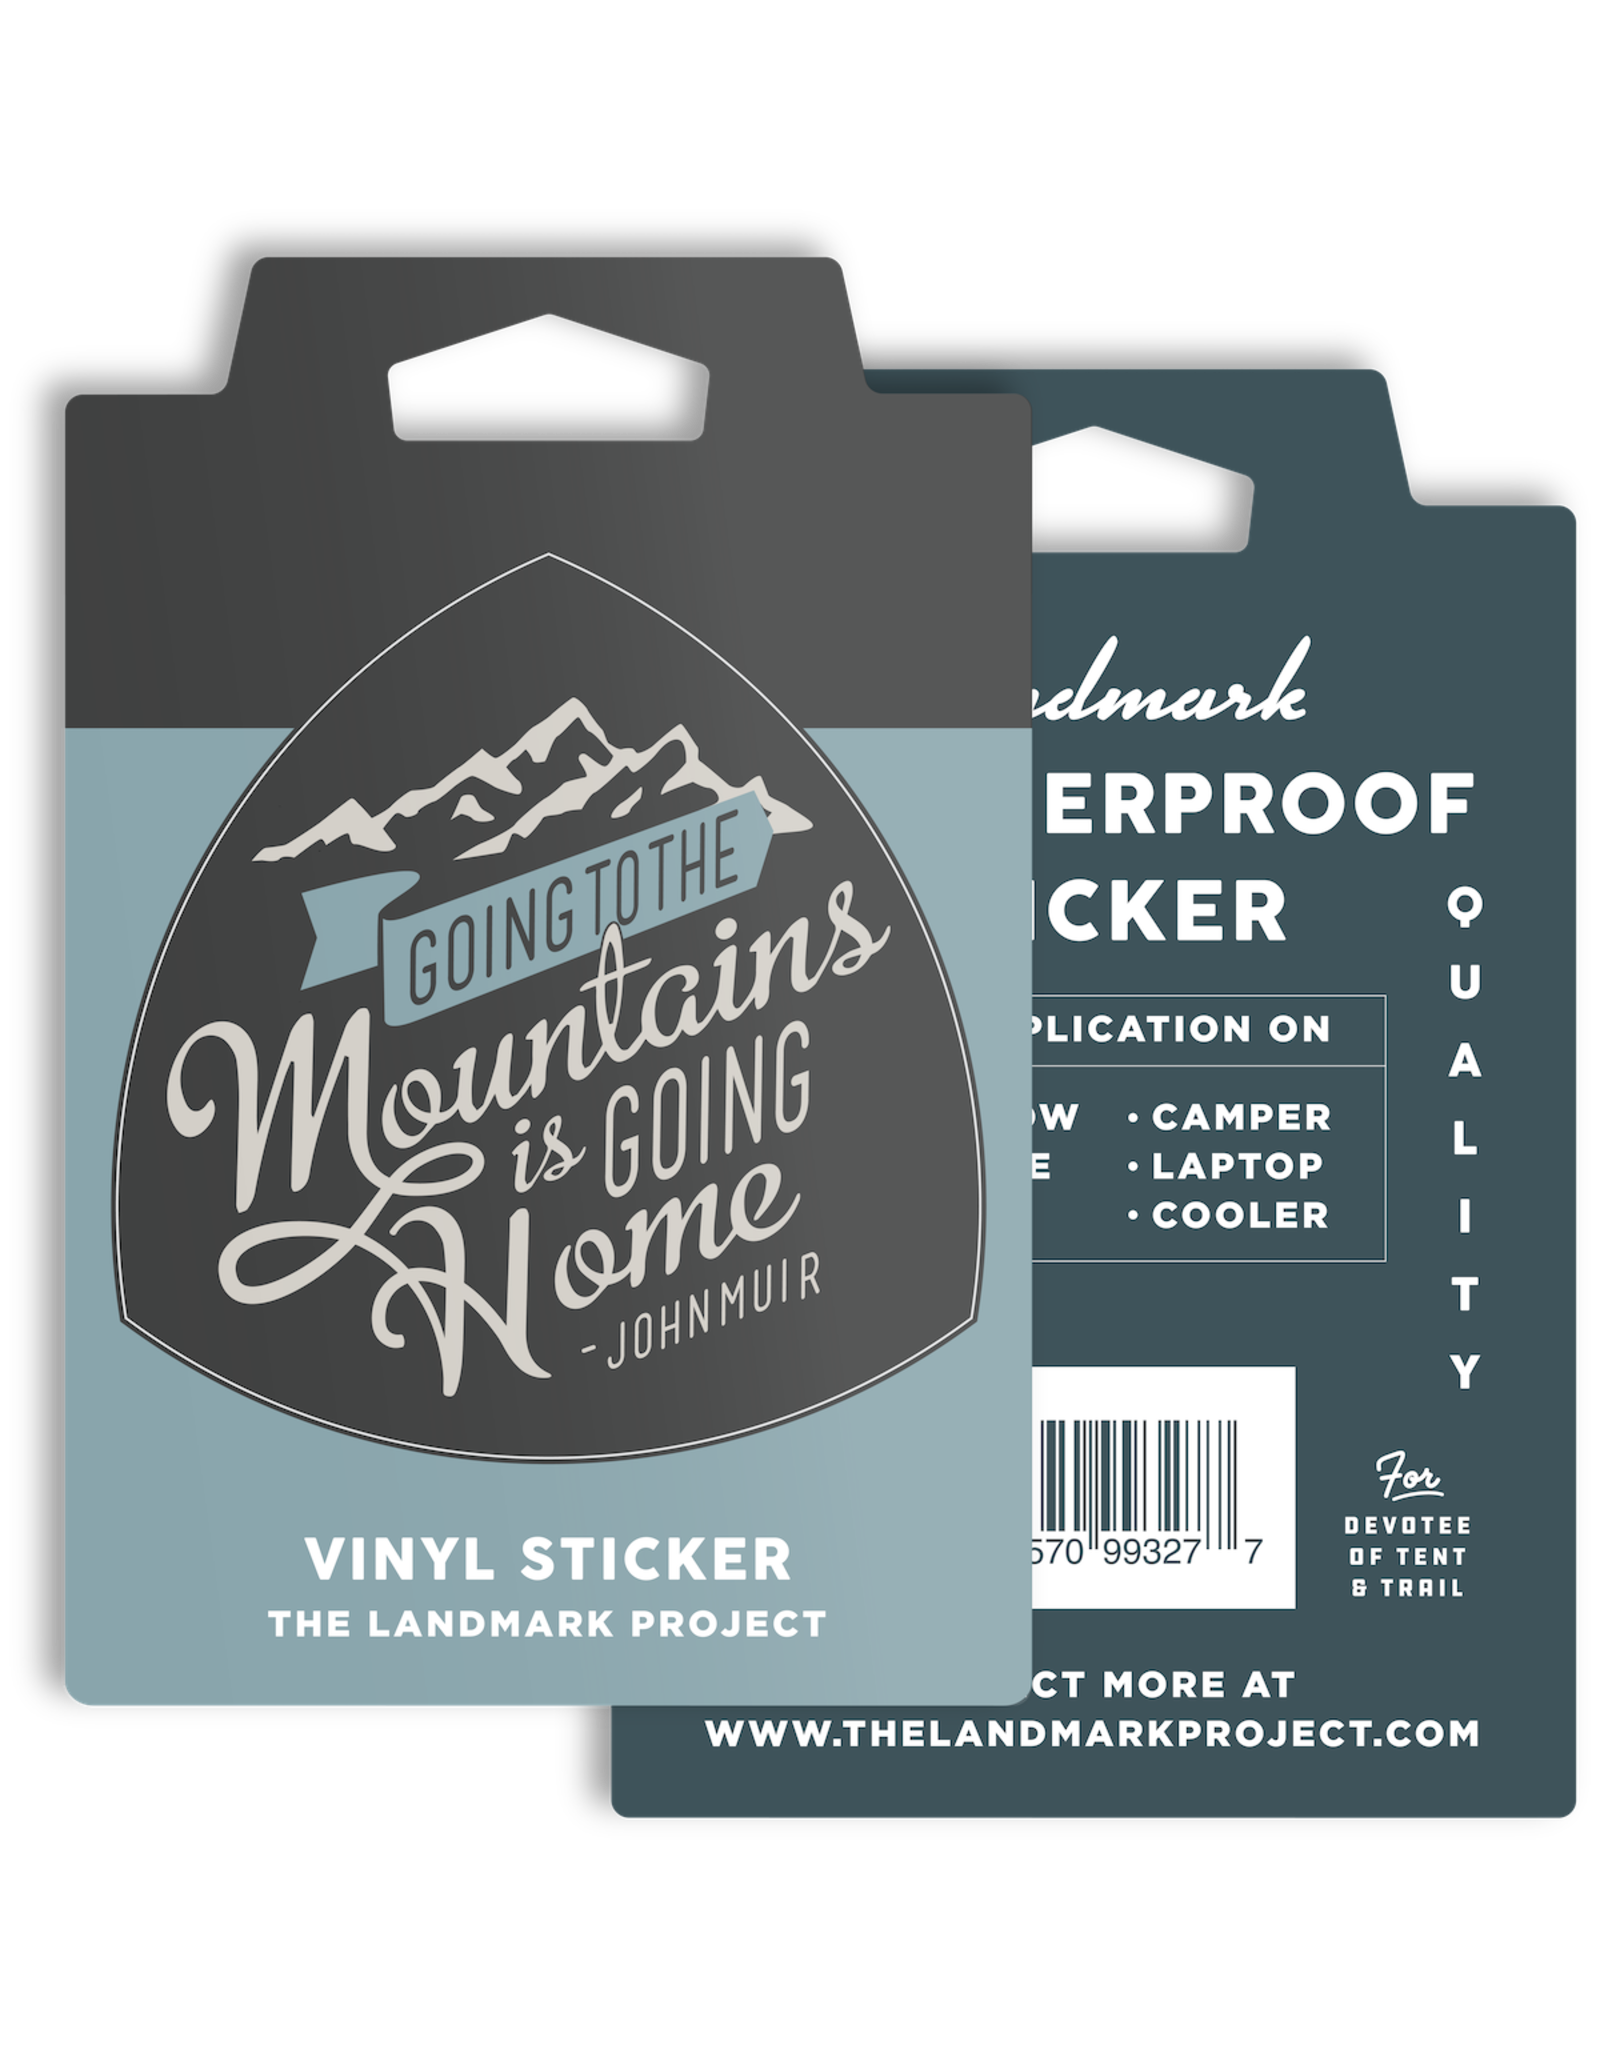 The Landmark Project Going To The Mountains - Sticker